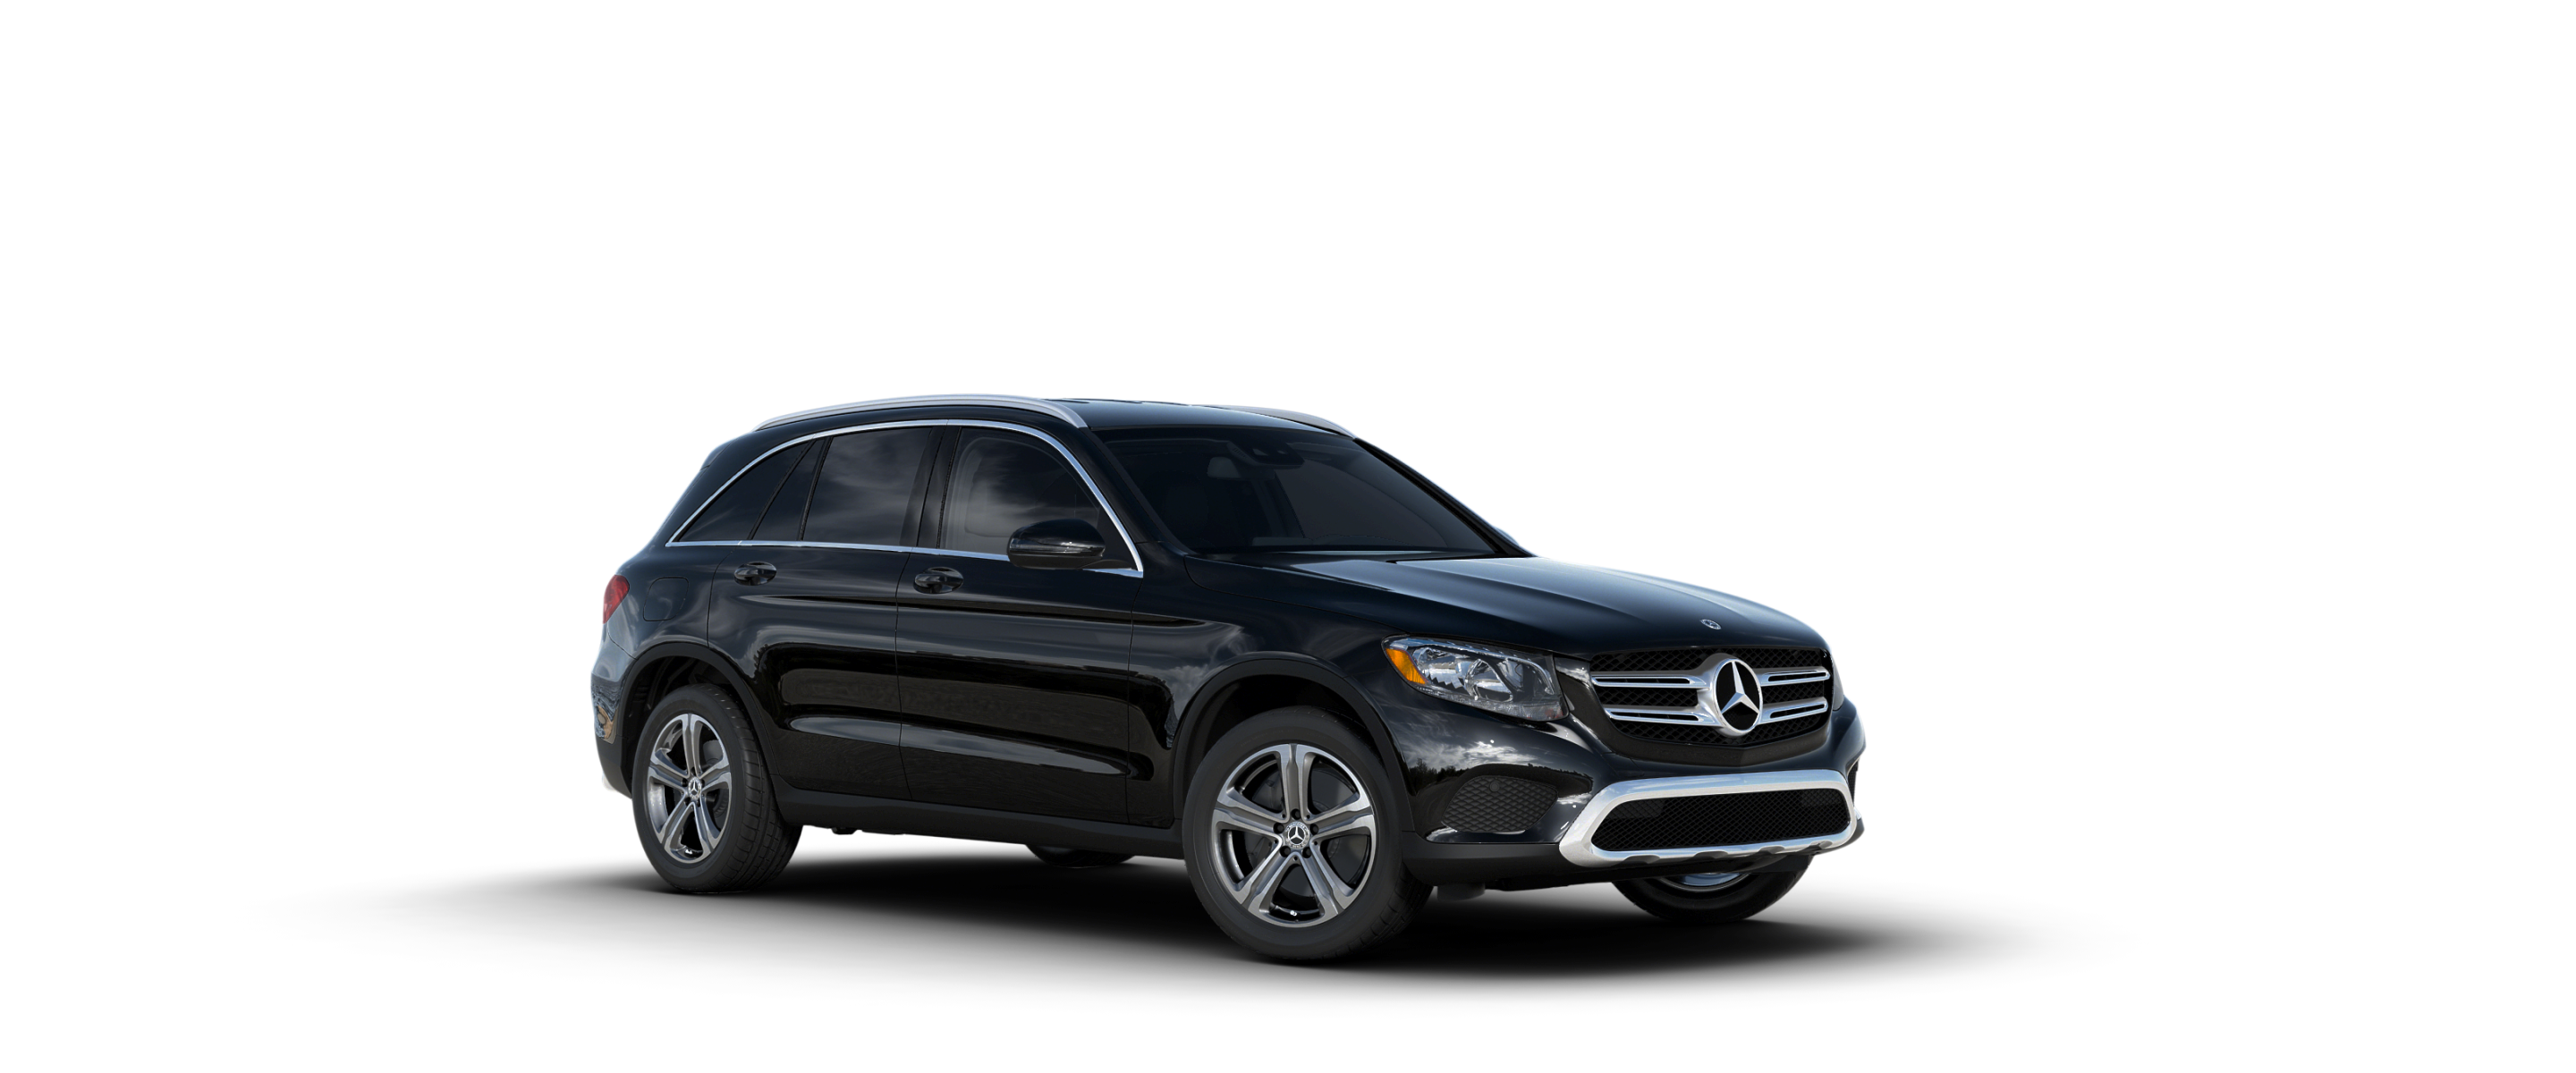 new awd ae amg inventory sport gls benz utility mercedes suv in